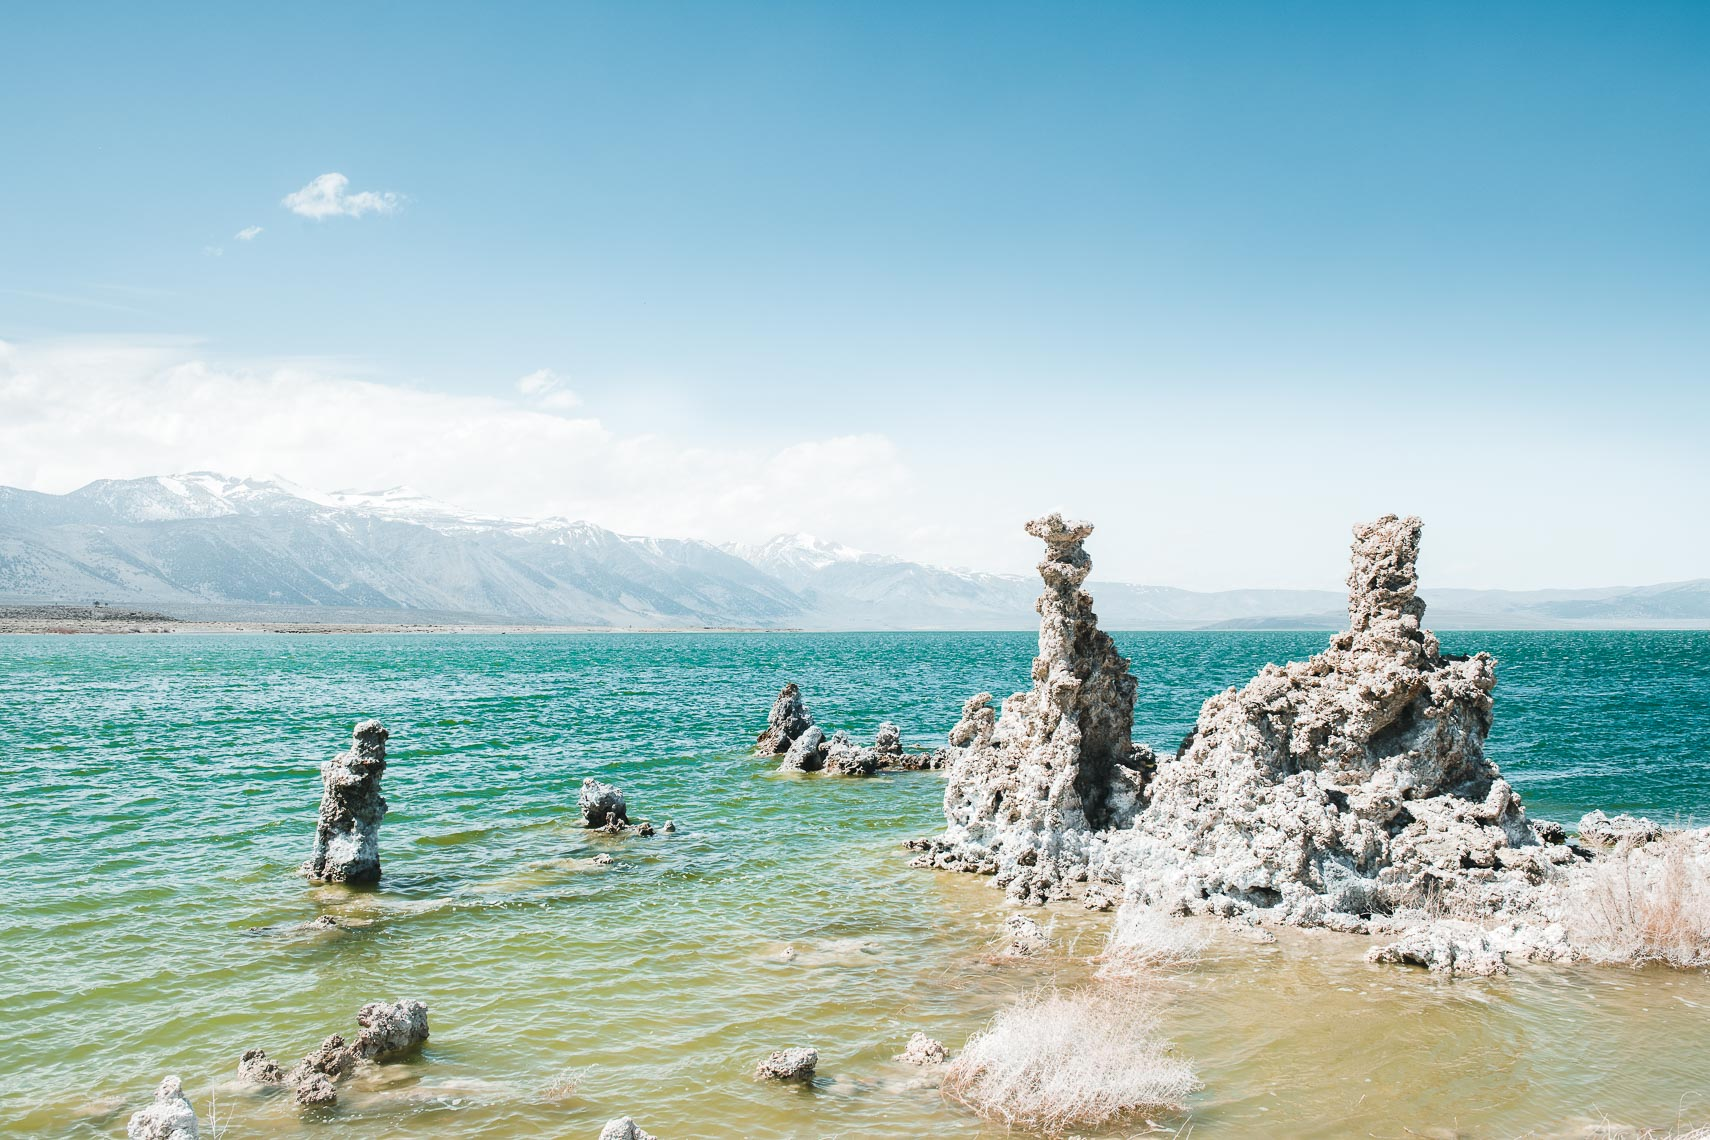 tuffa on mono lake